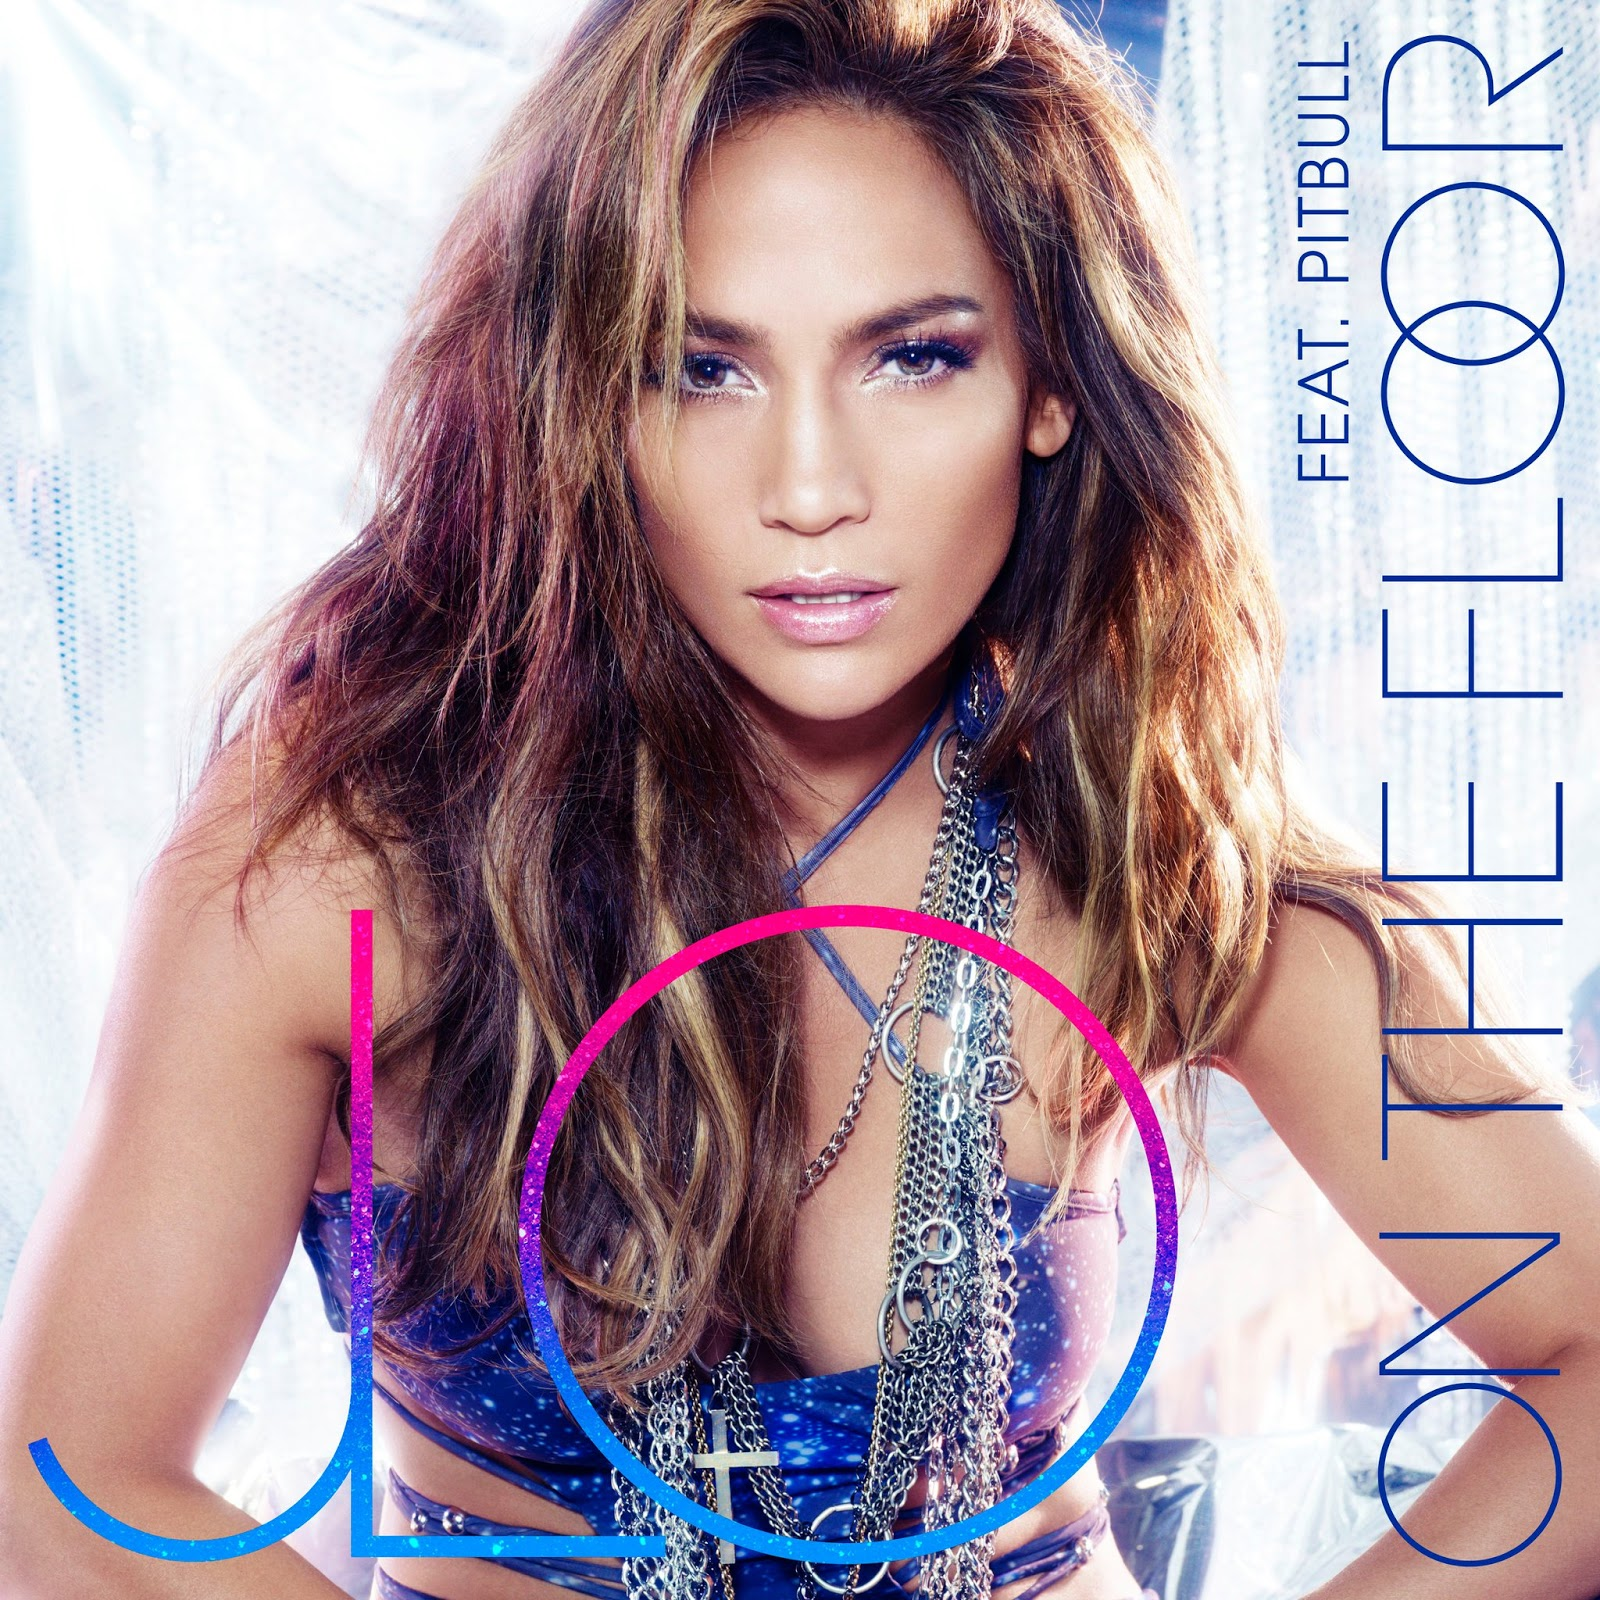 http://4.bp.blogspot.com/-u1LkEf9n3vg/TwKa0i4FXOI/AAAAAAAAB6g/_jJoi8ZnME0/s1600/jennifer-lopez-on-the-floor-ft-pitbull.jpg